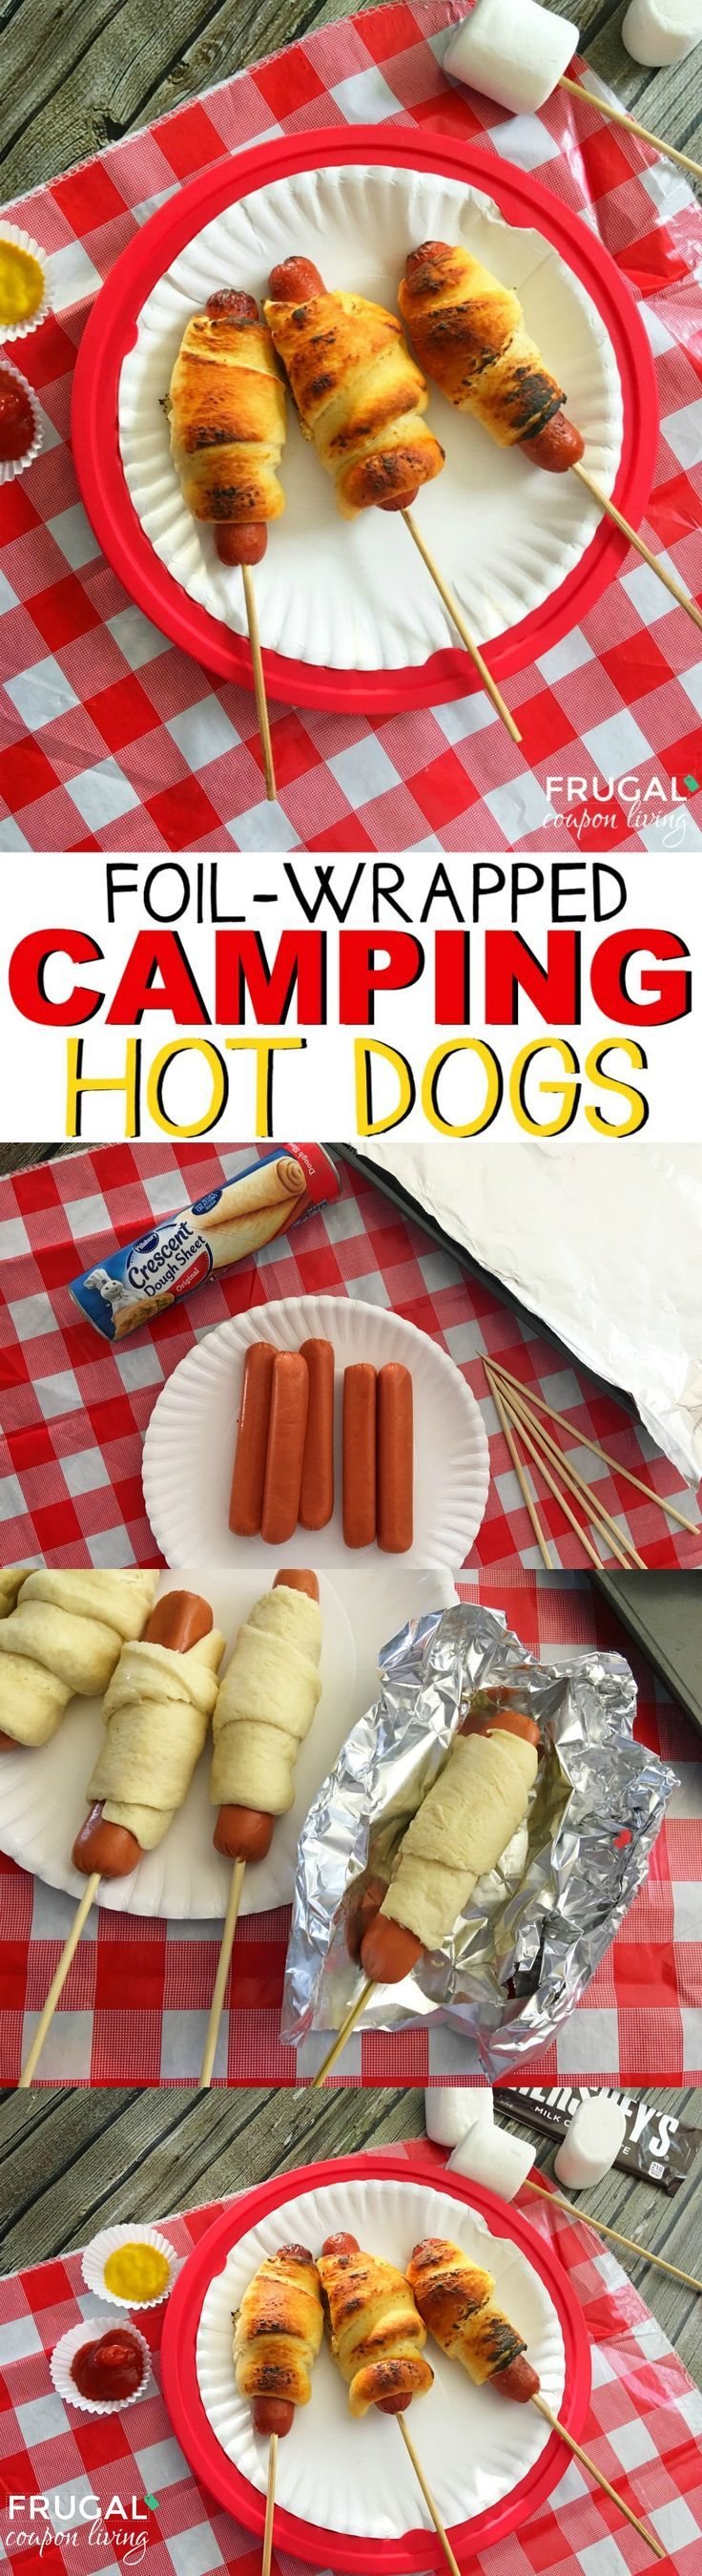 Camping Hot Dogs Recipe for the Campfire on Frugal Coupon Living. Great Camping Entree Idea or use in the backyard this summer - we think it would be fun for a sleepover party!